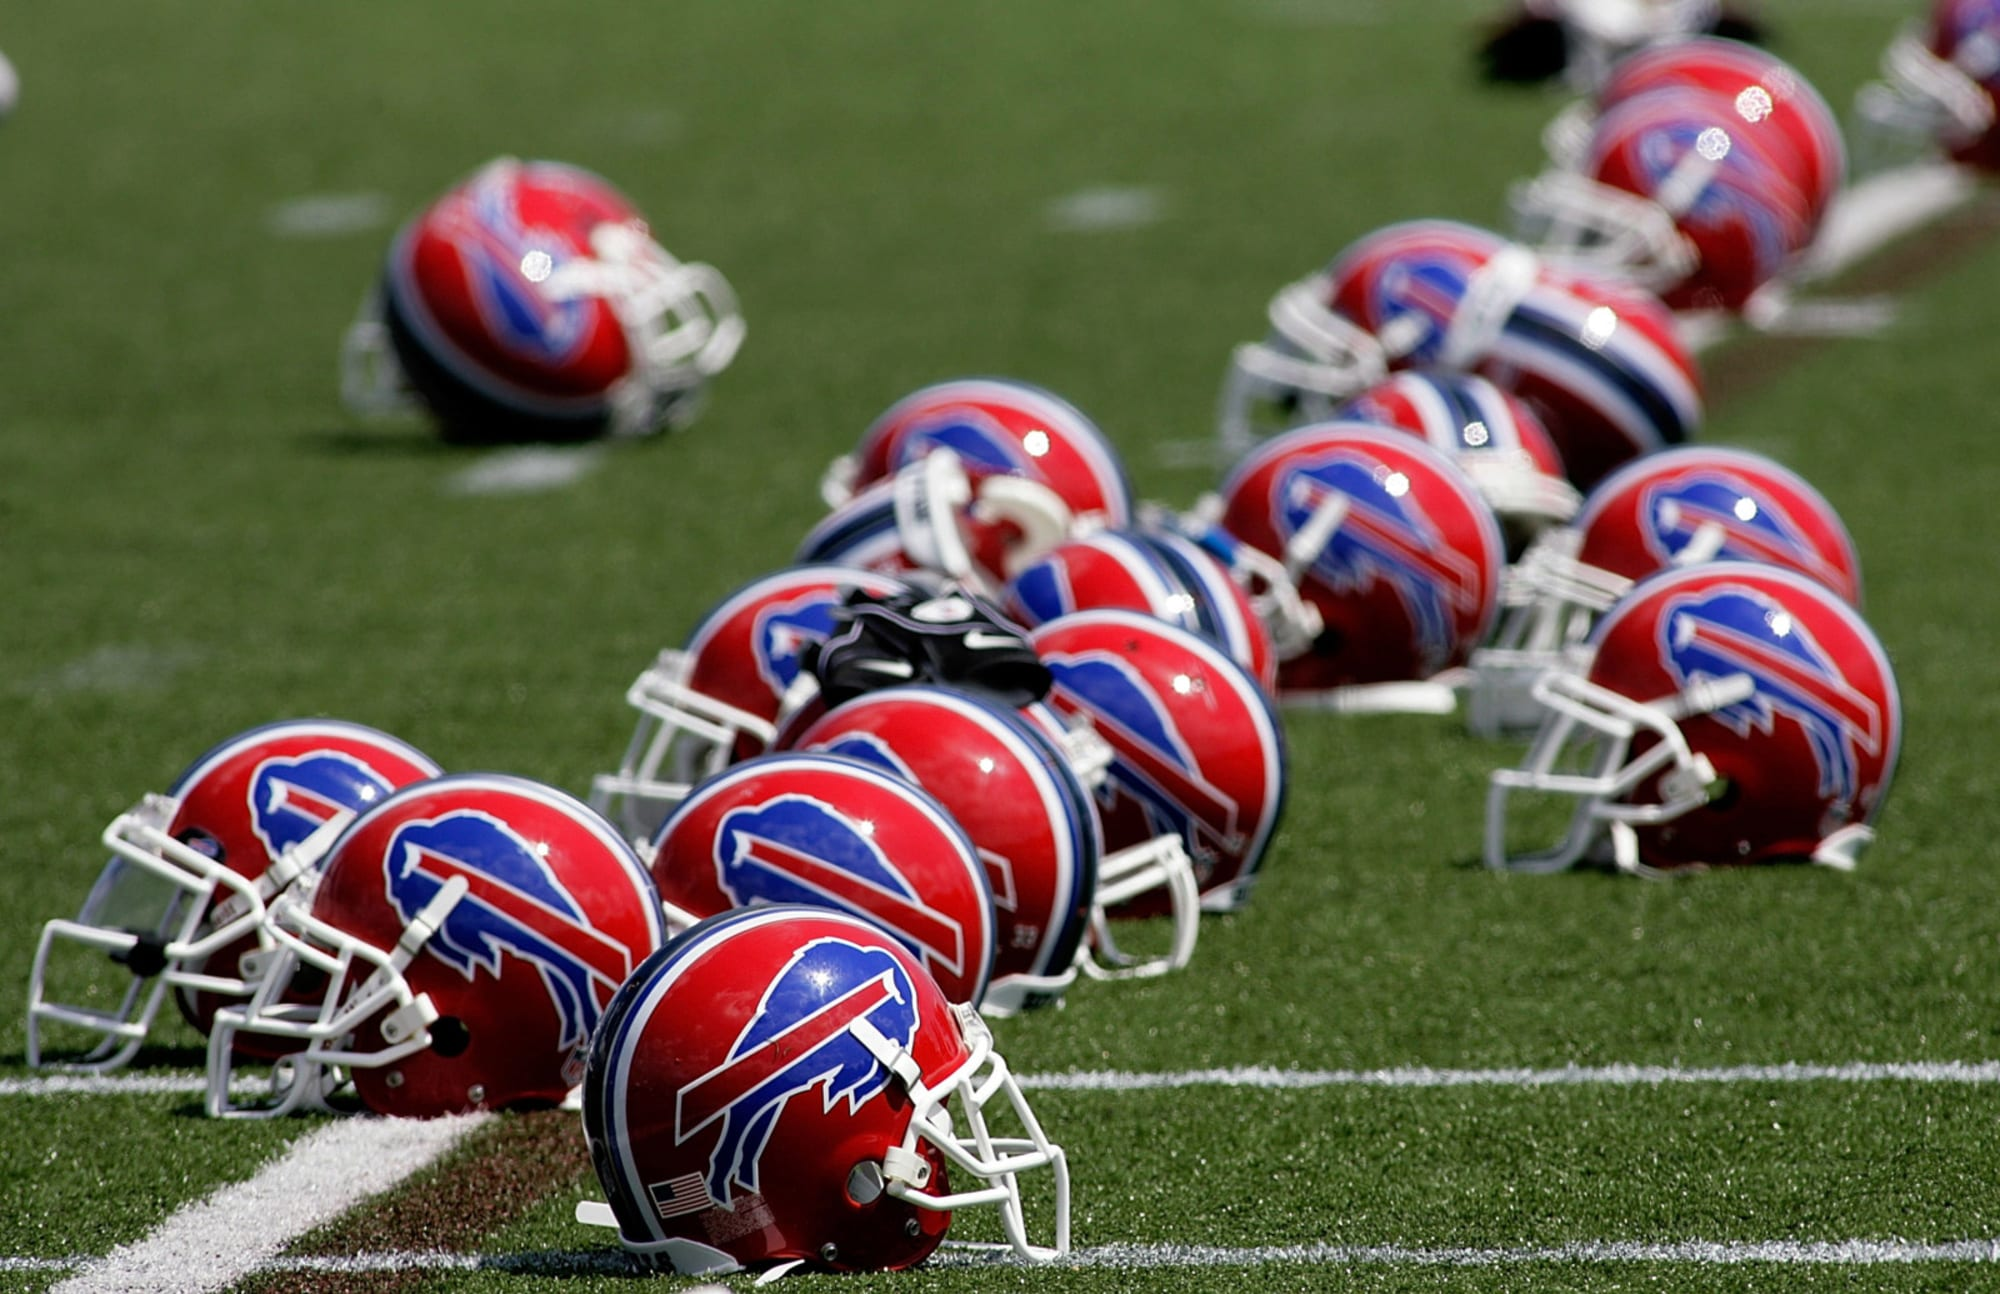 Buffalo Bills training camp will not take place at St. John Fisher in 2020